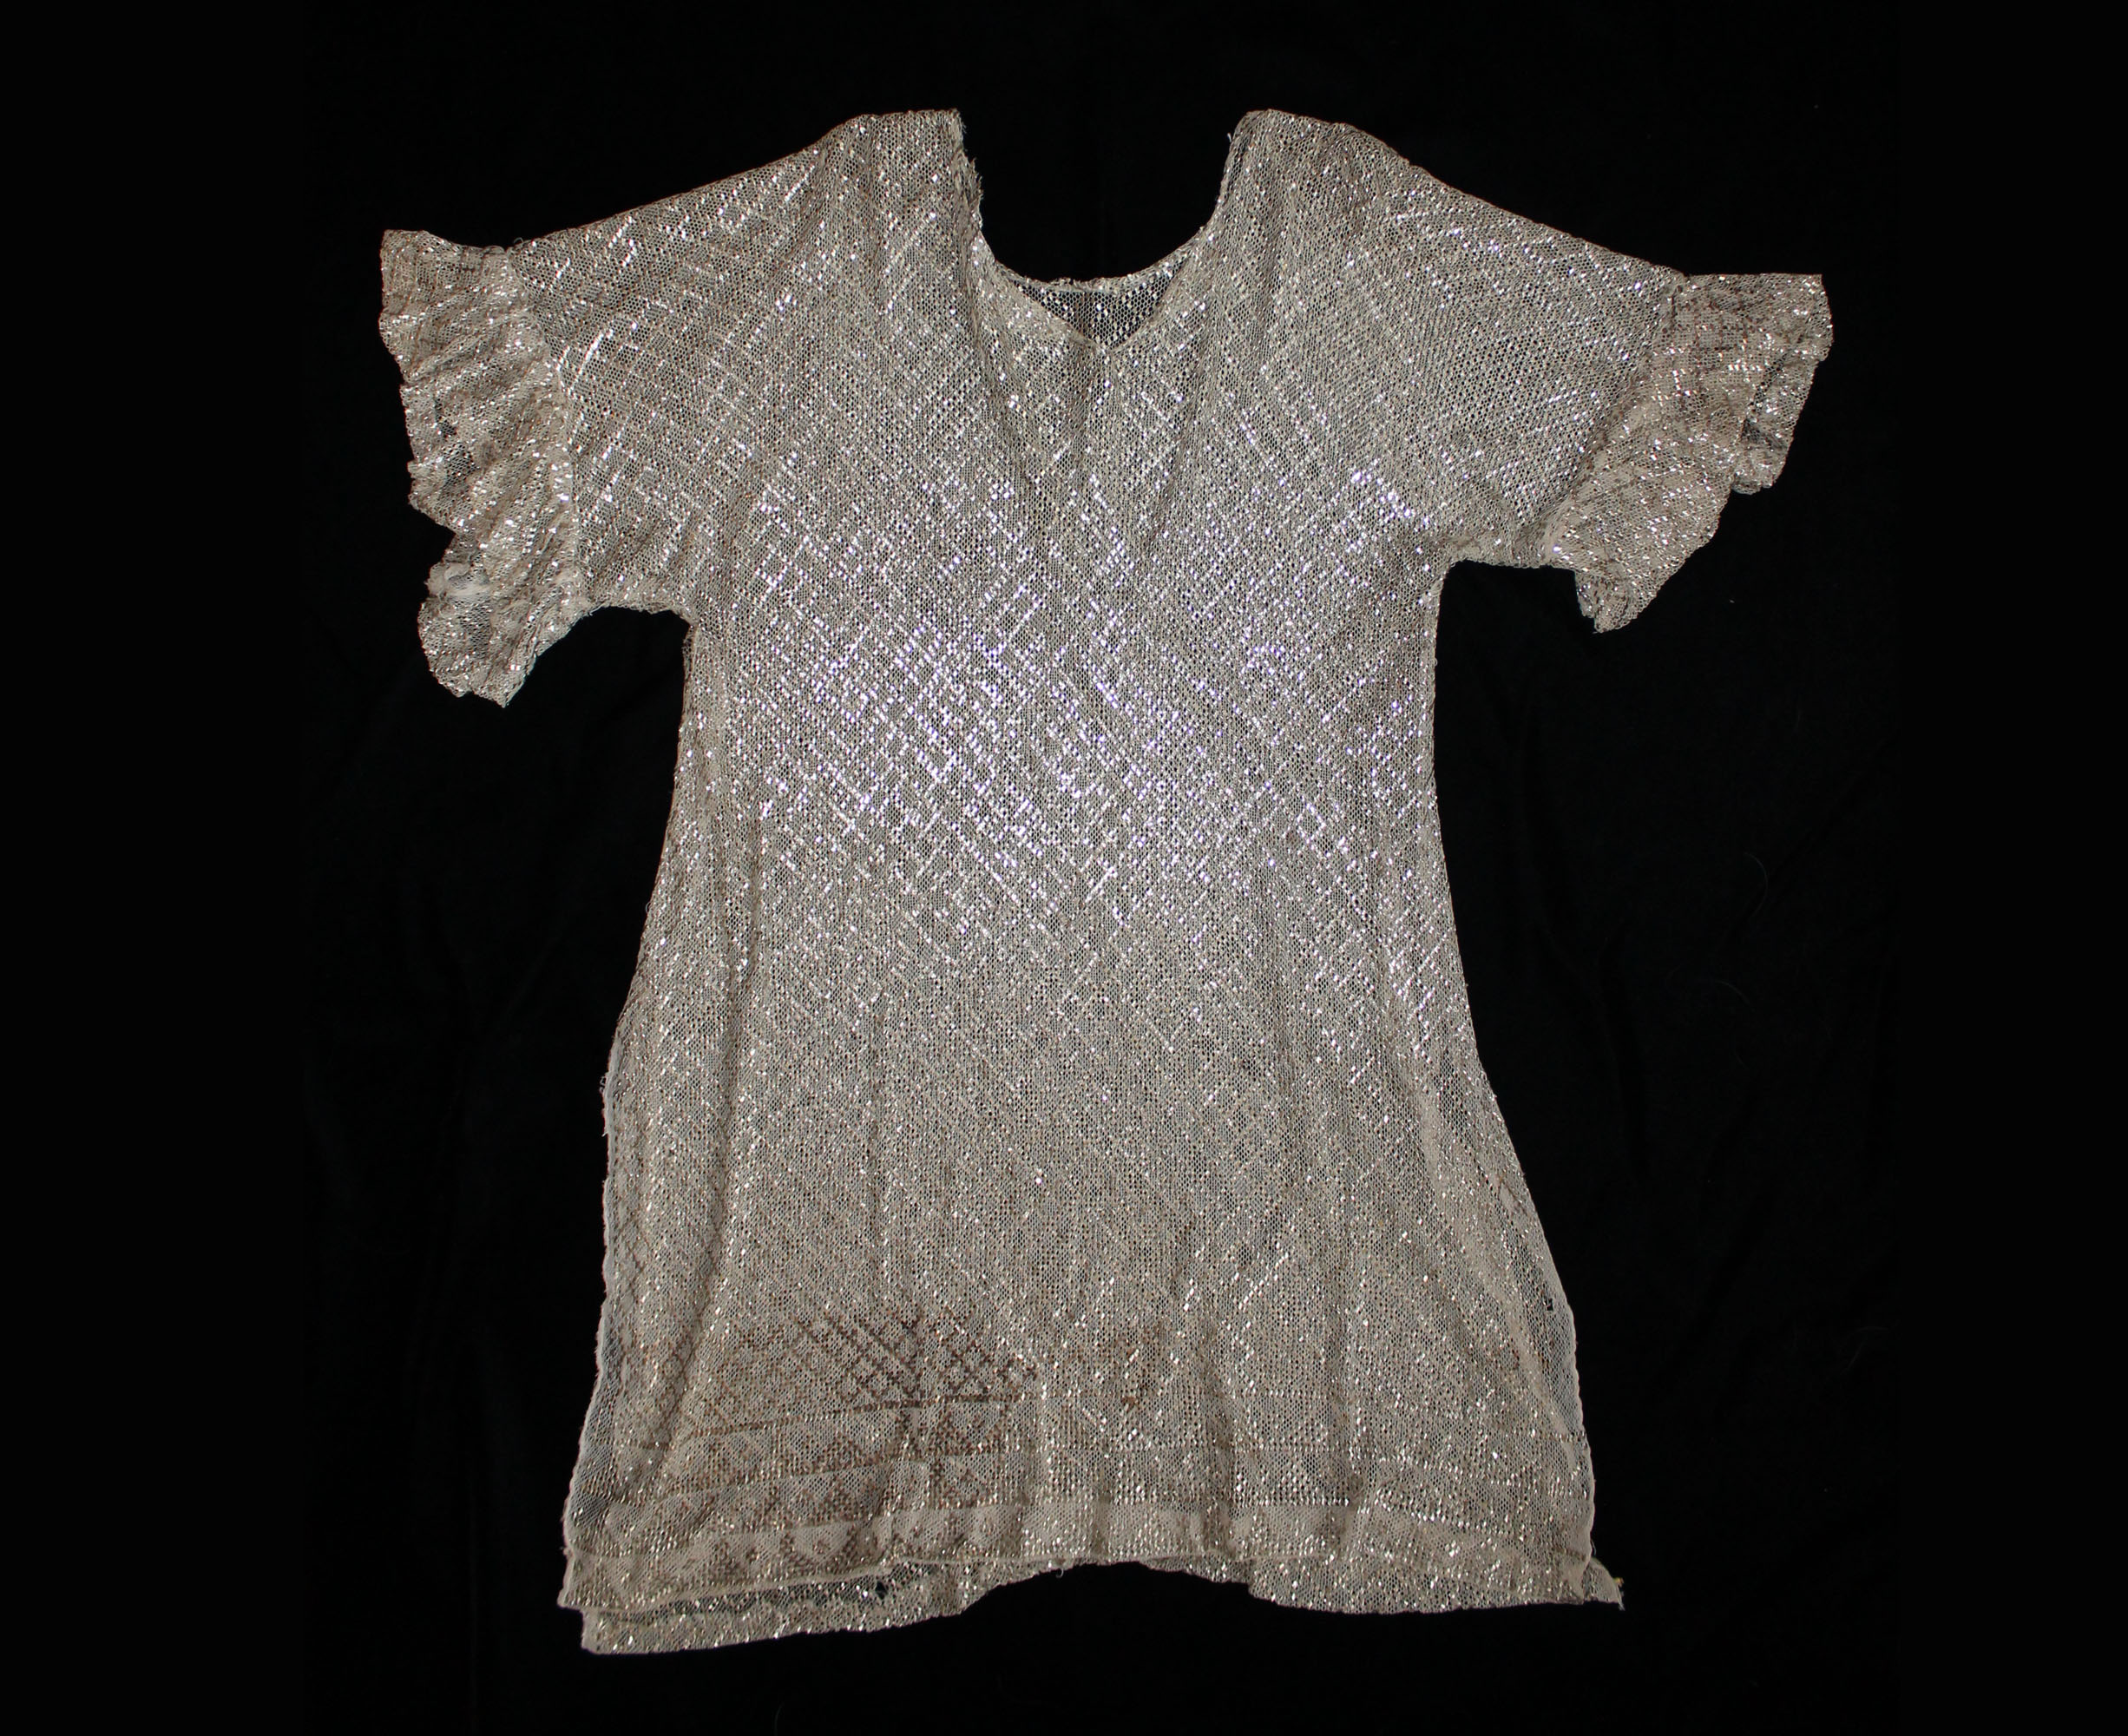 Assuit hammered metal on cotton net tunic top or dress. Egyptian revival. 1920s.